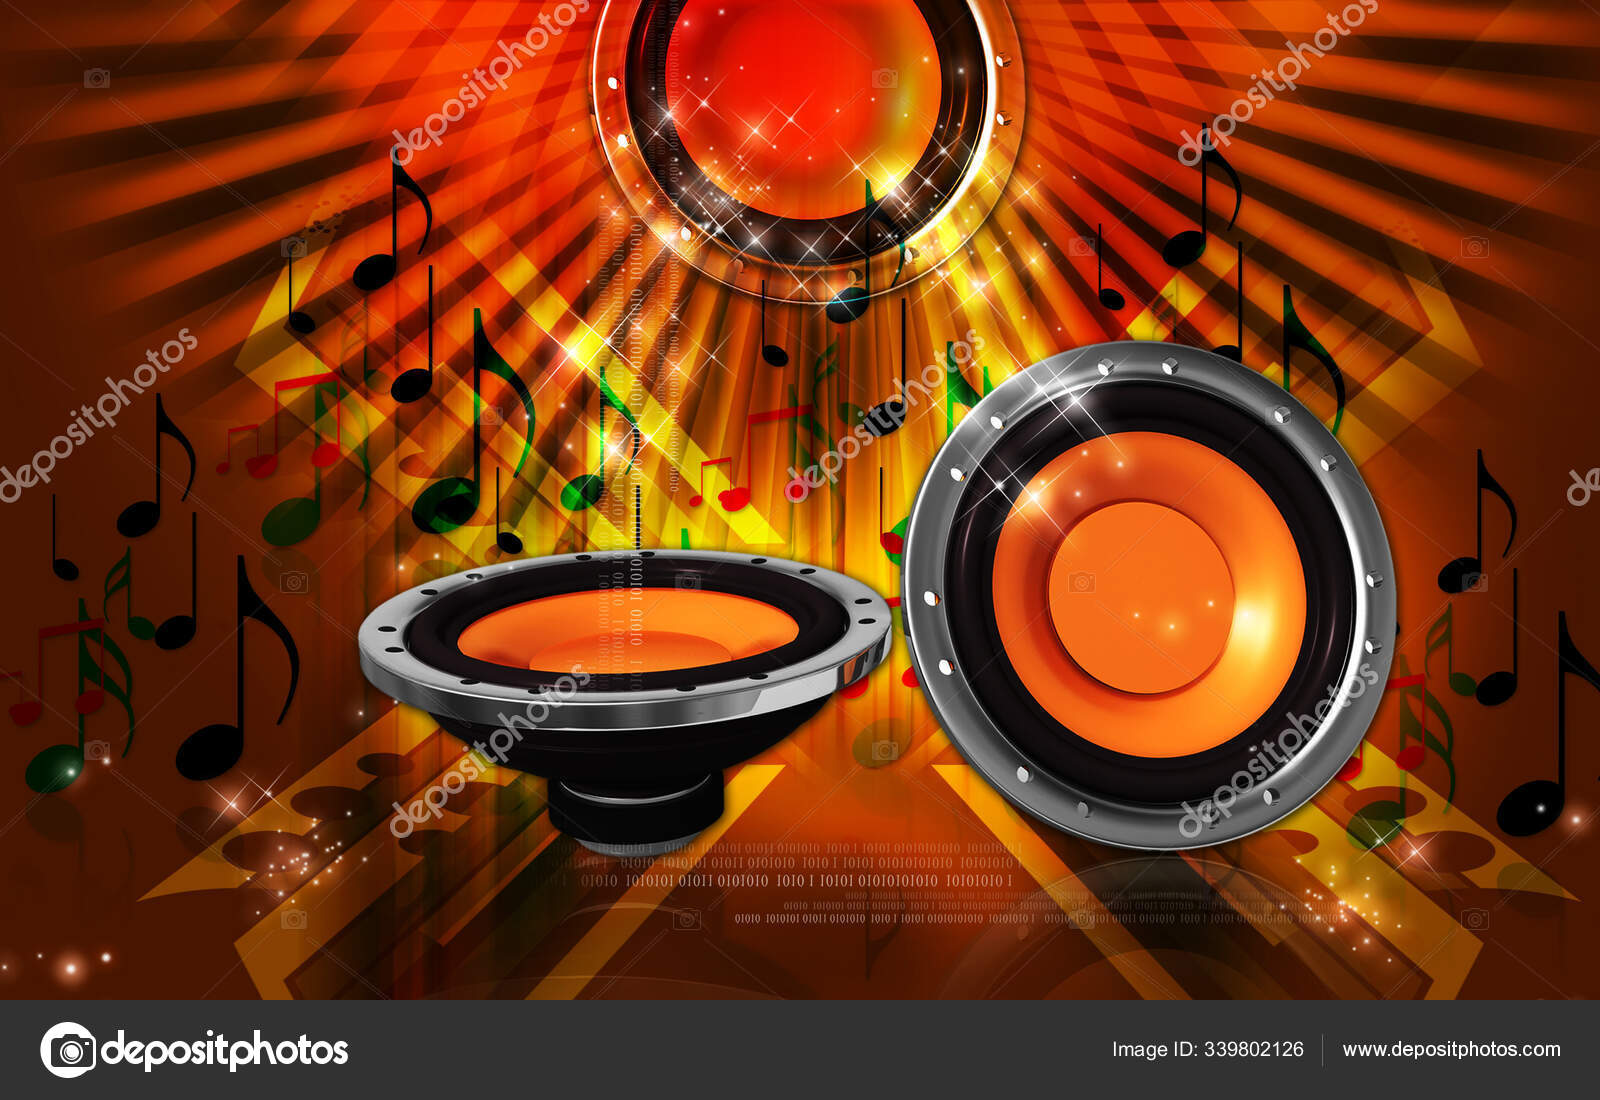 Digital Illustration Car Stereo Colour Background Stock Photo C Panthermediaseller 339802126